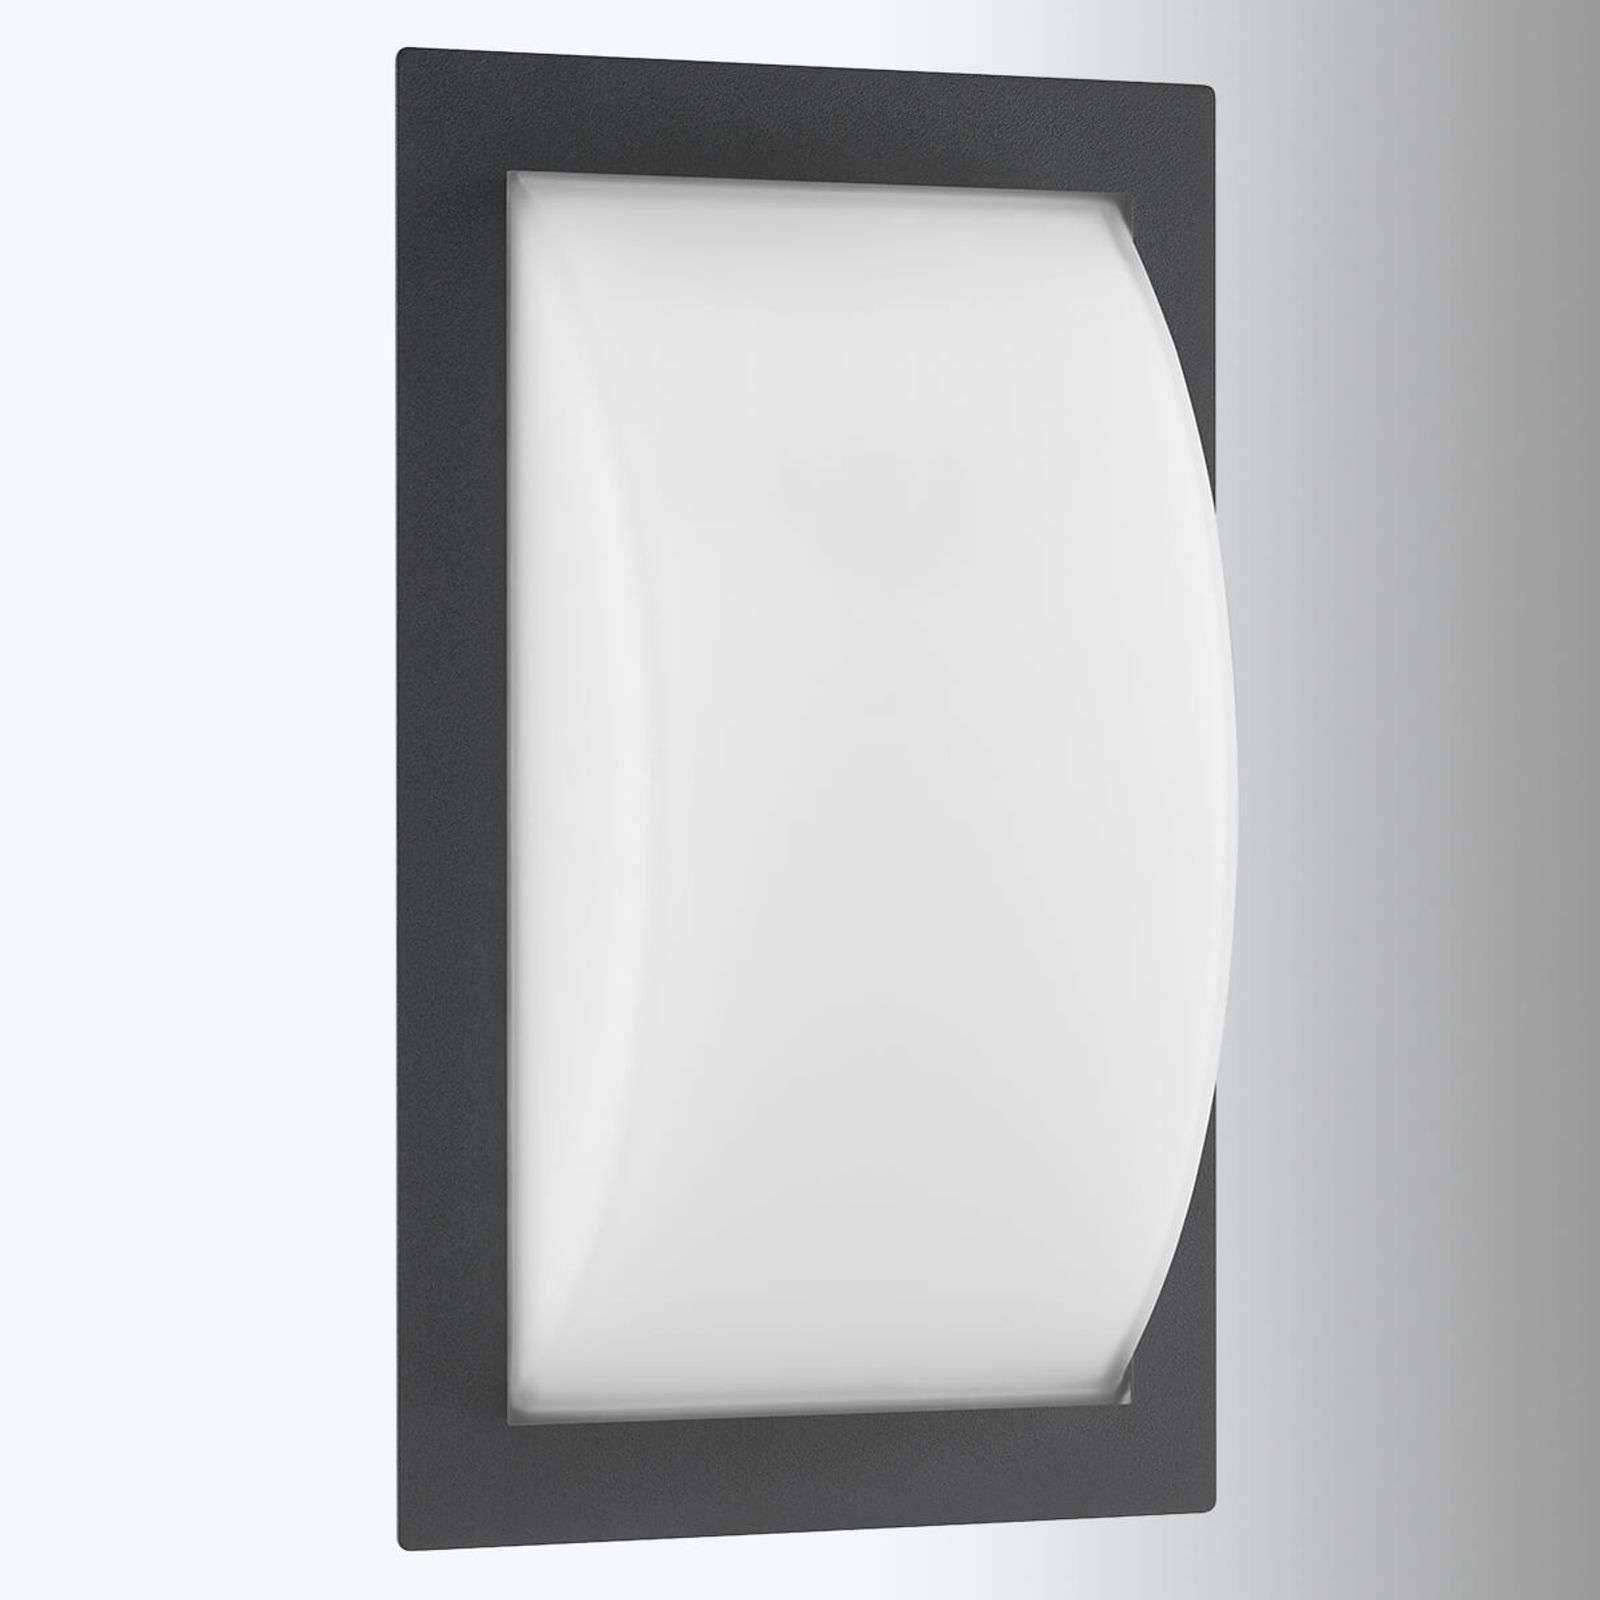 Elegante applique da esterni LED Ivett grafite